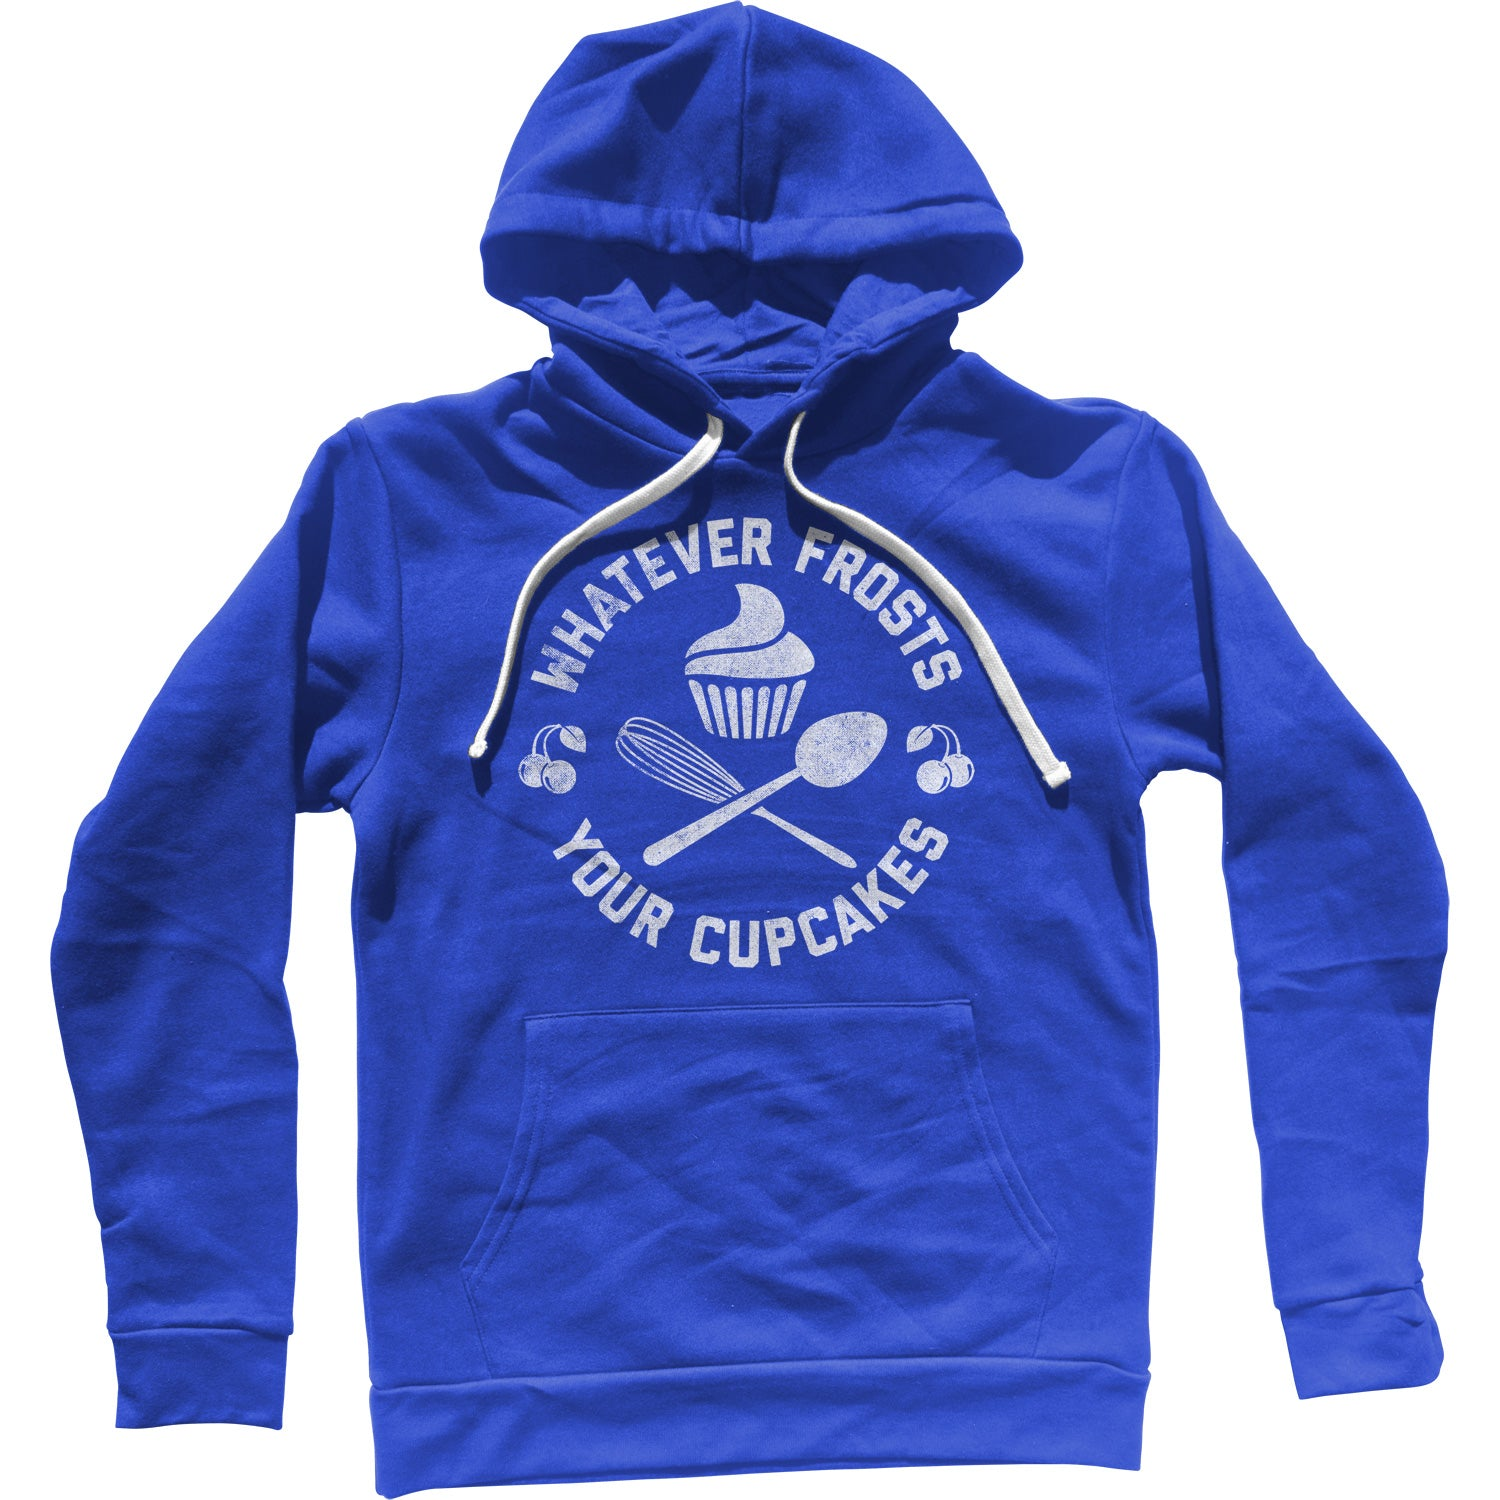 Whatever Frosts Your Cupcakes Unisex Hoodie